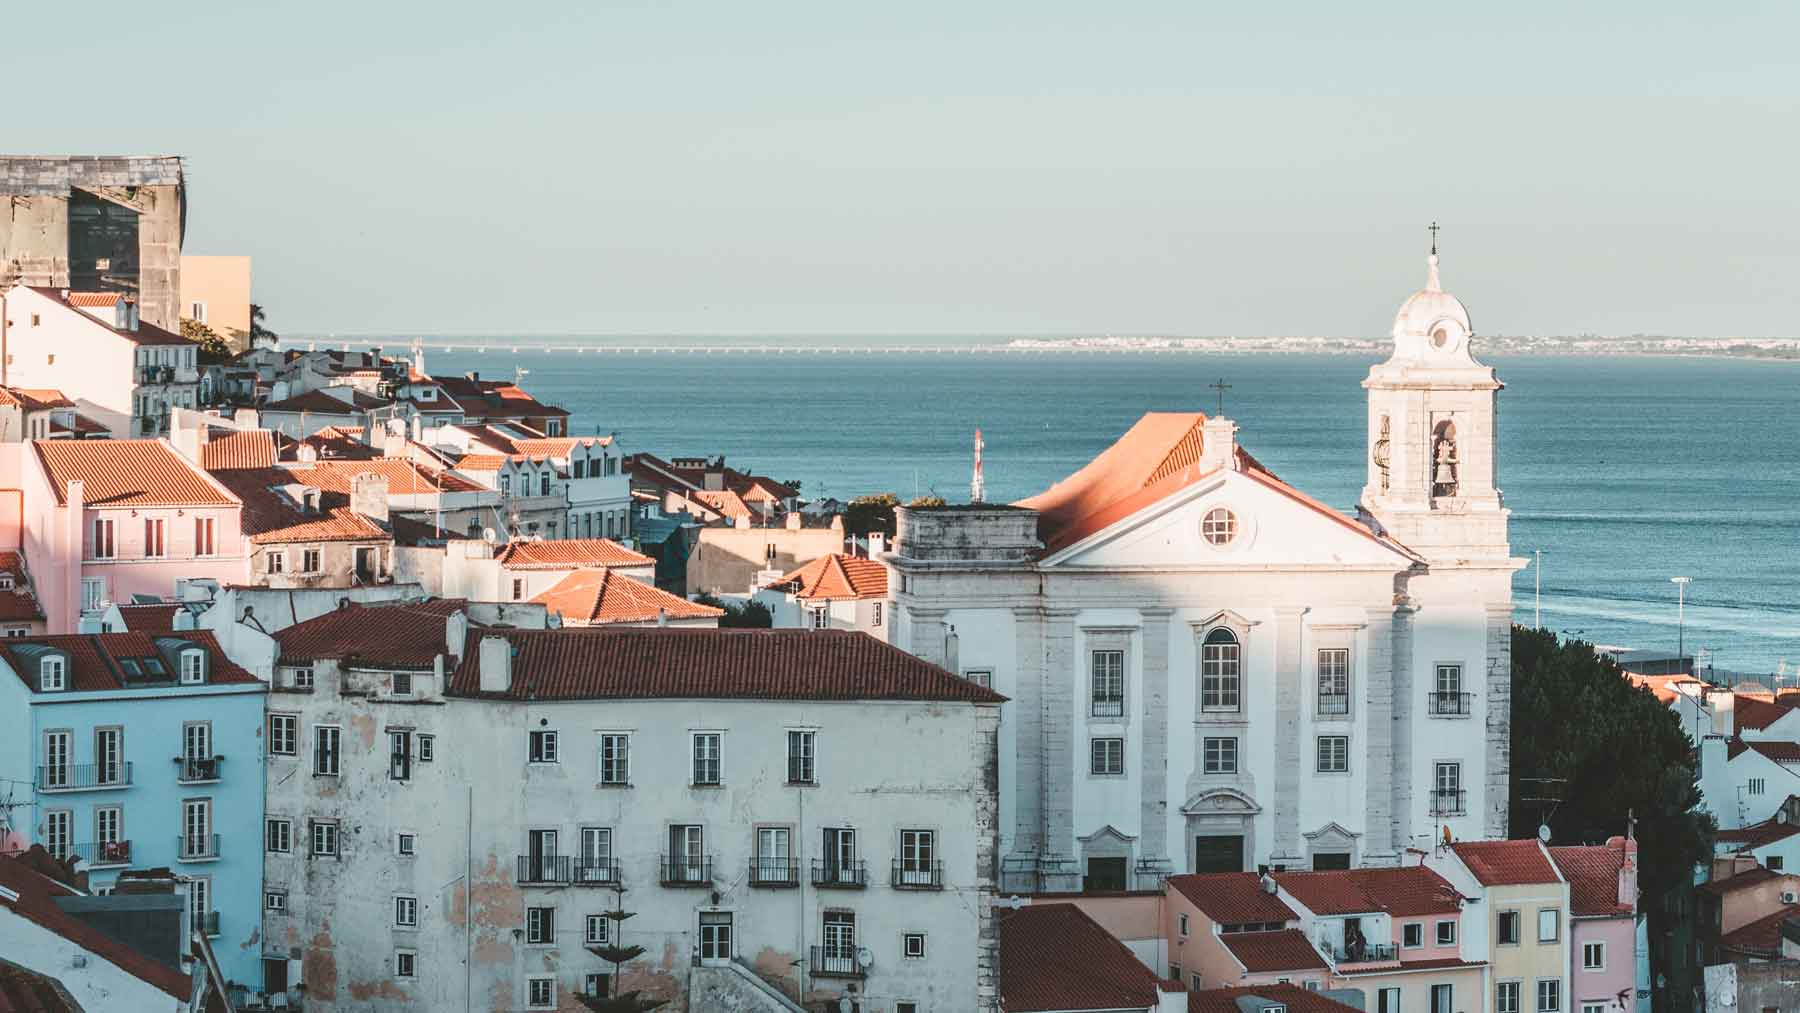 View from Santa Luzia. | Photo by Robin Alves via Unsplash.